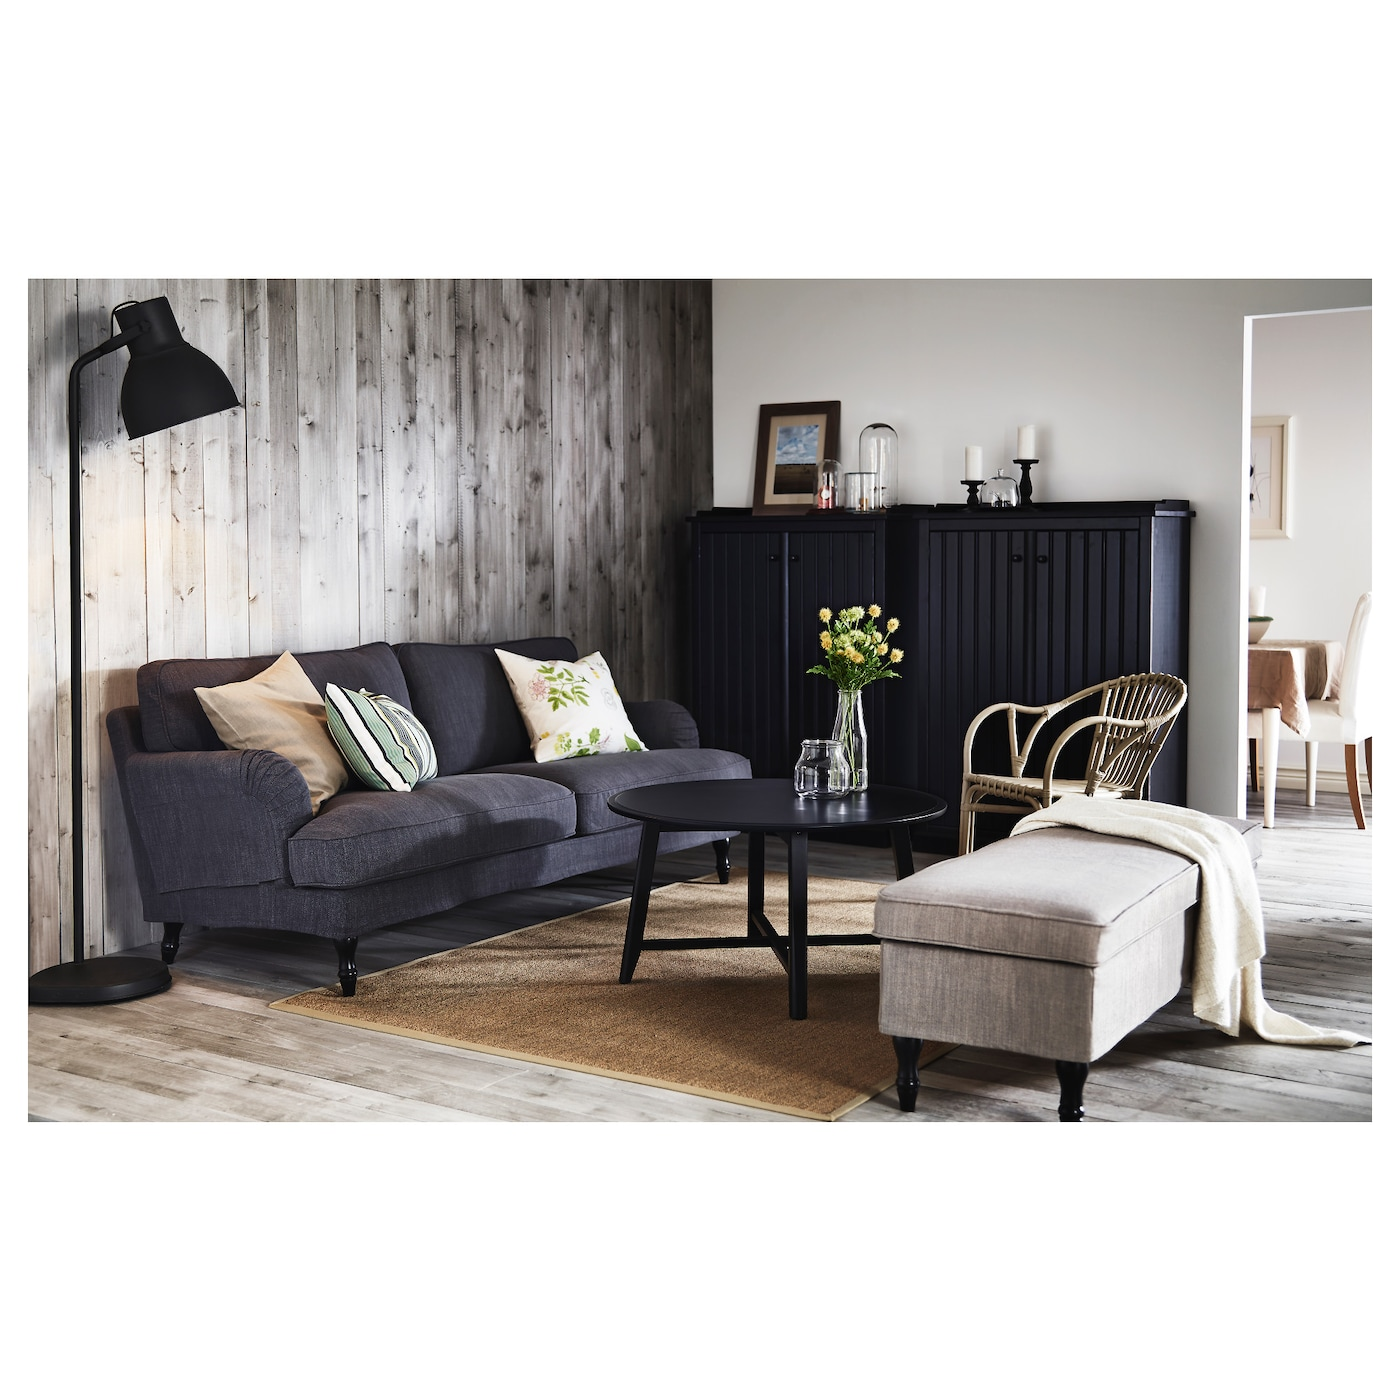 Stocksund Three Seat Sofa Nolhaga Dark Grey Black Wood Ikea